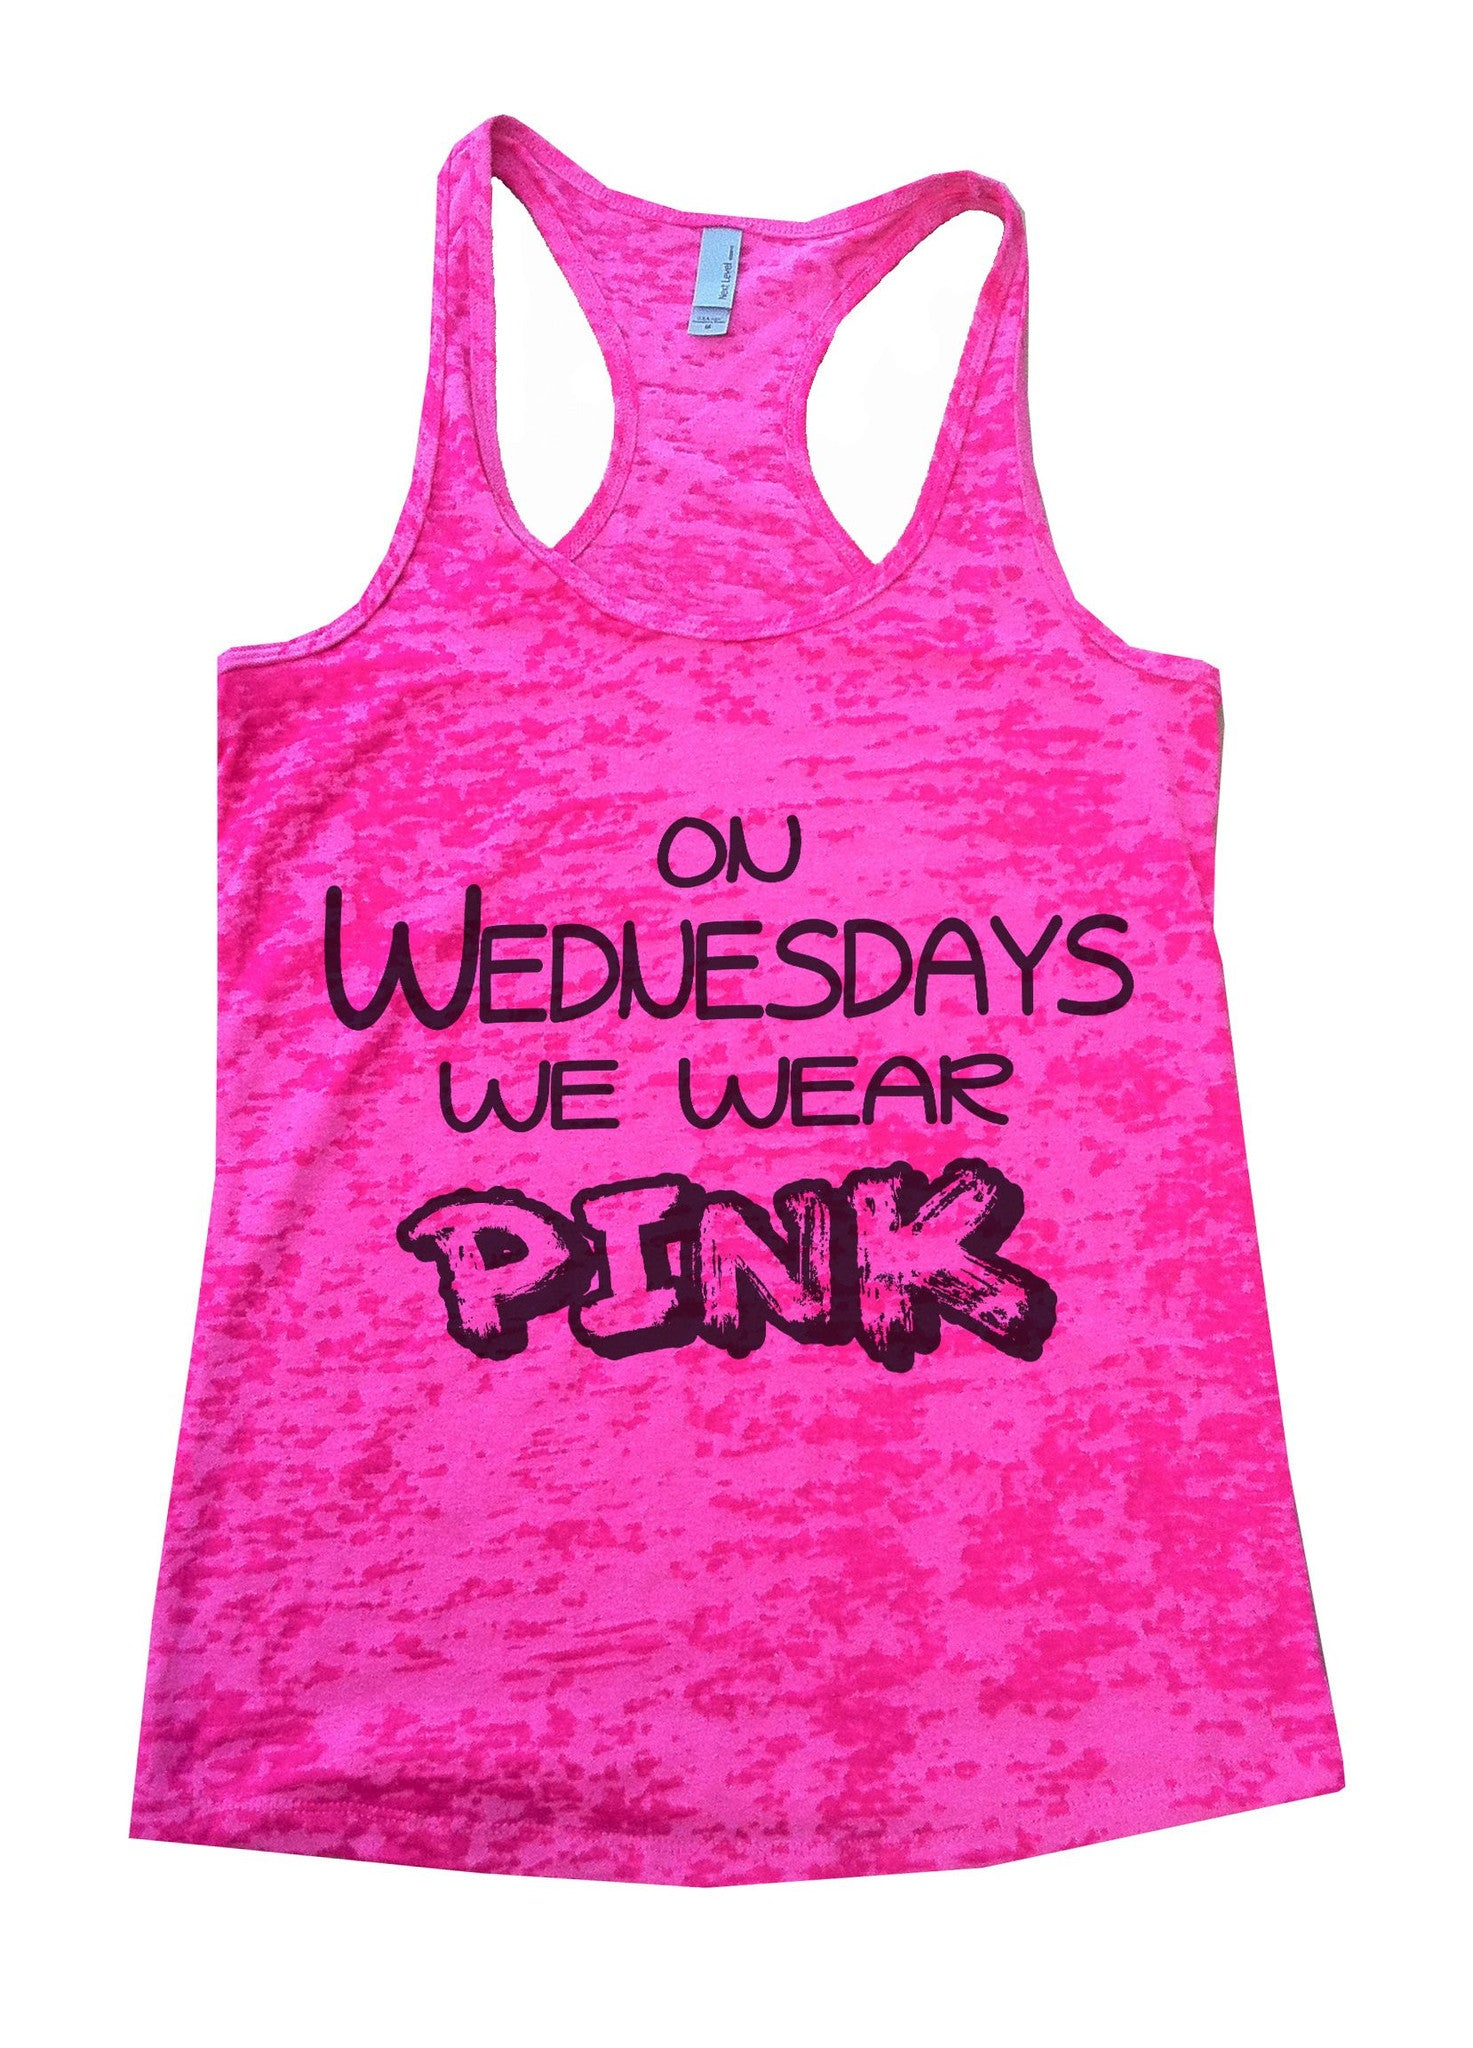 On Wednesdays We Wear Pink Burnout Tank Top By BurnoutTankTops.com - 537 - Funny Shirts Tank Tops Burnouts and Triblends  - 2